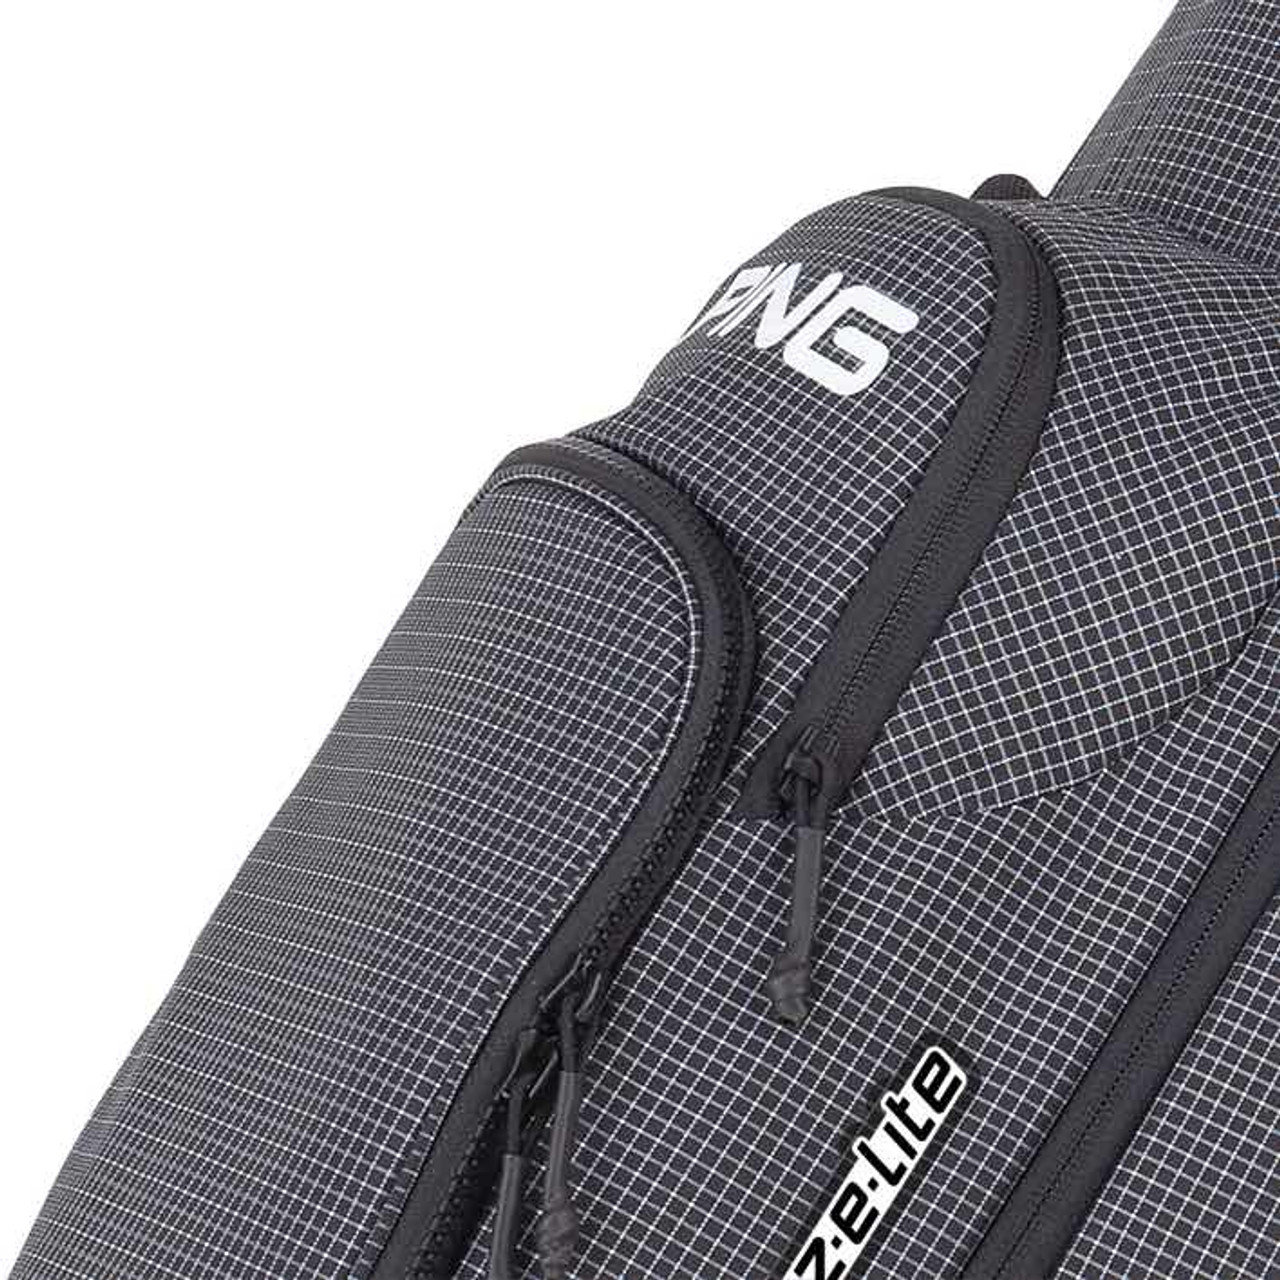 PING Hoofer Craz-E Lite Personalized Stand Bags - Black / White